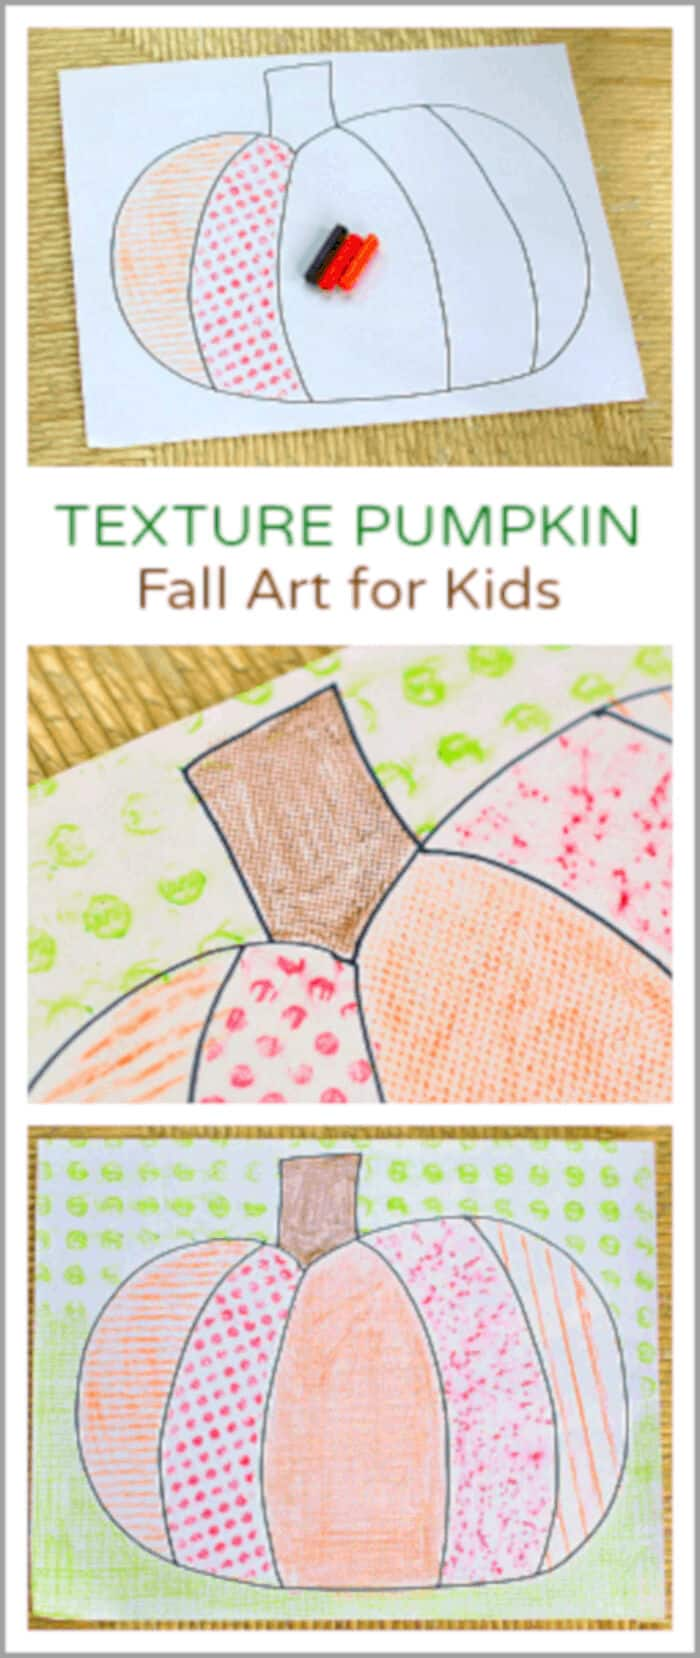 Textured-Pumpkins-Using-Crayon-Rubbings-by-Buggy-and-Buddy